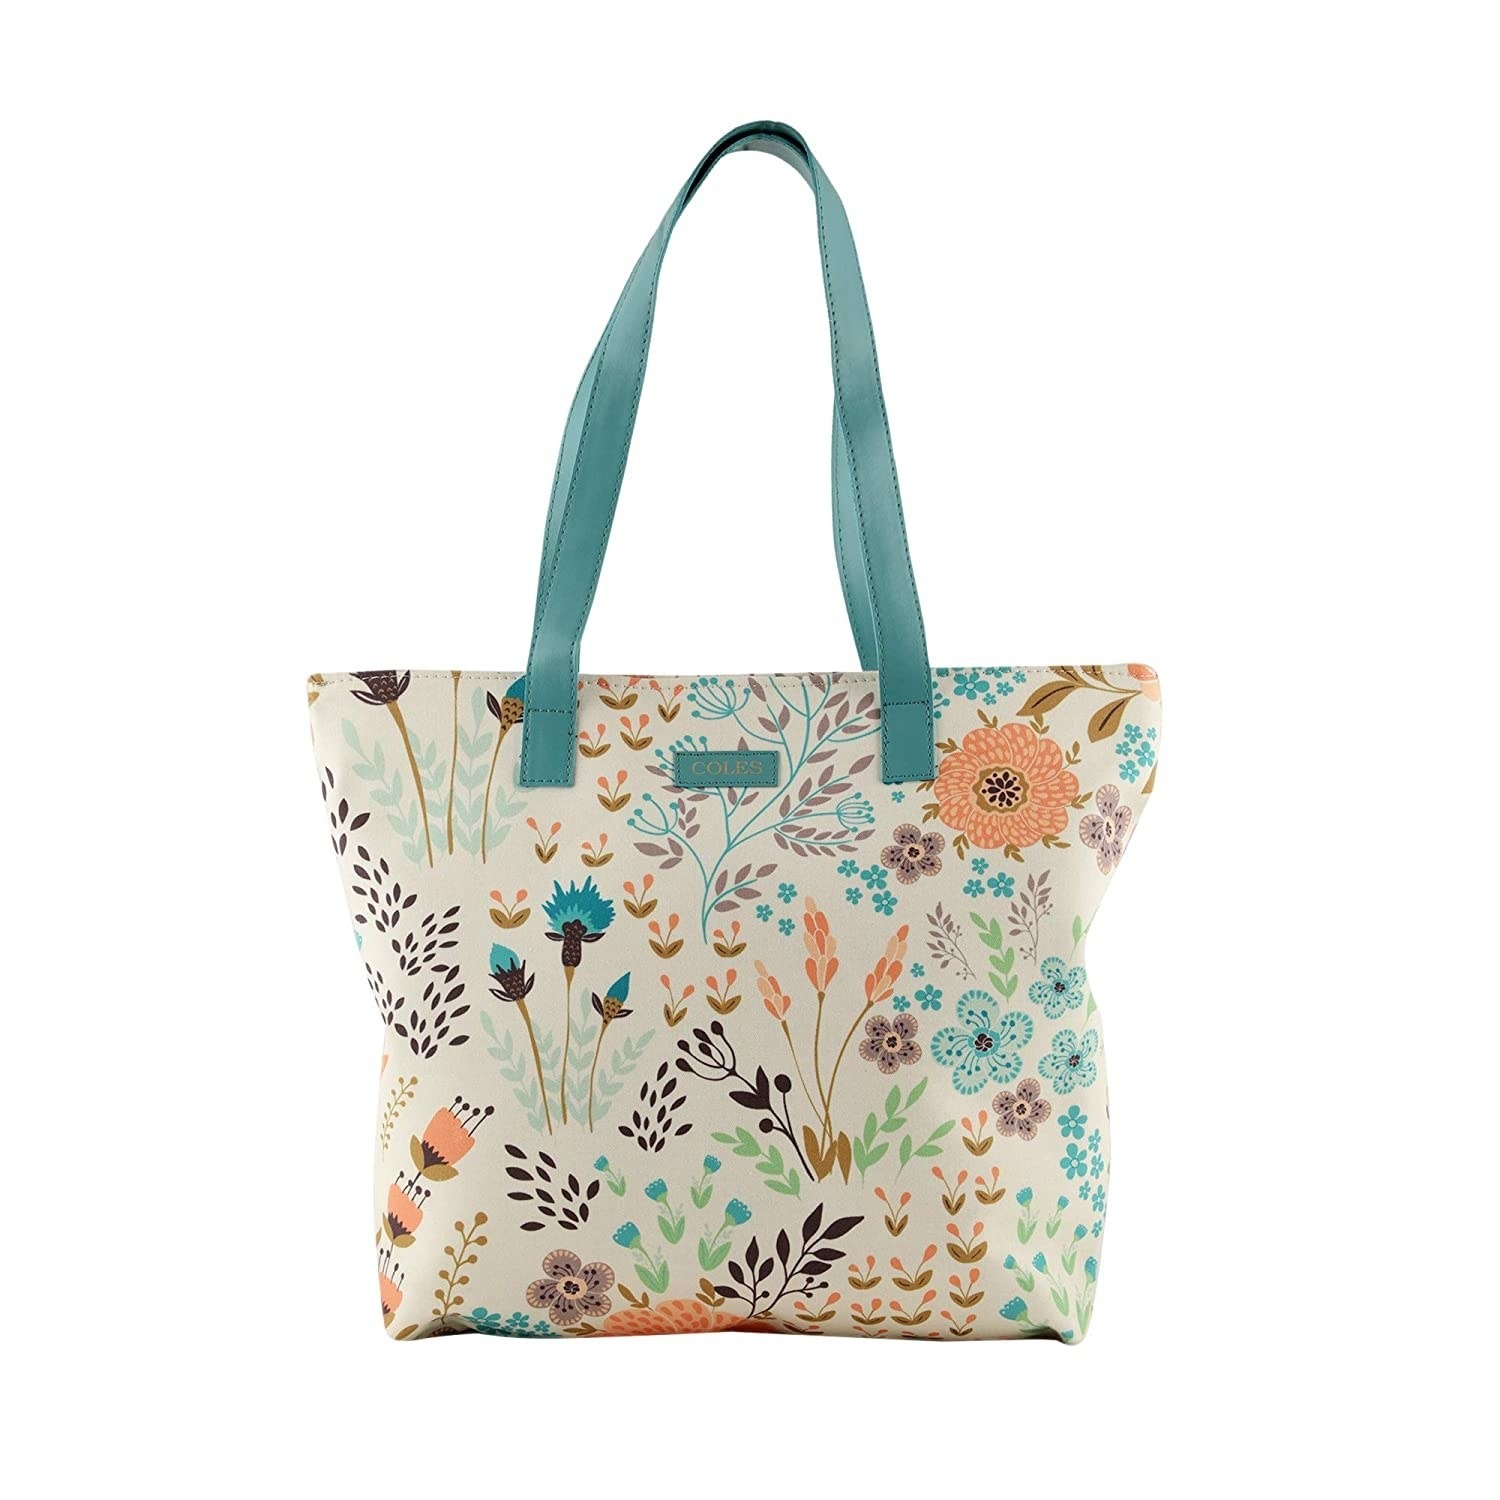 A white, teal, and orange tote bag with a floral print and teal handles